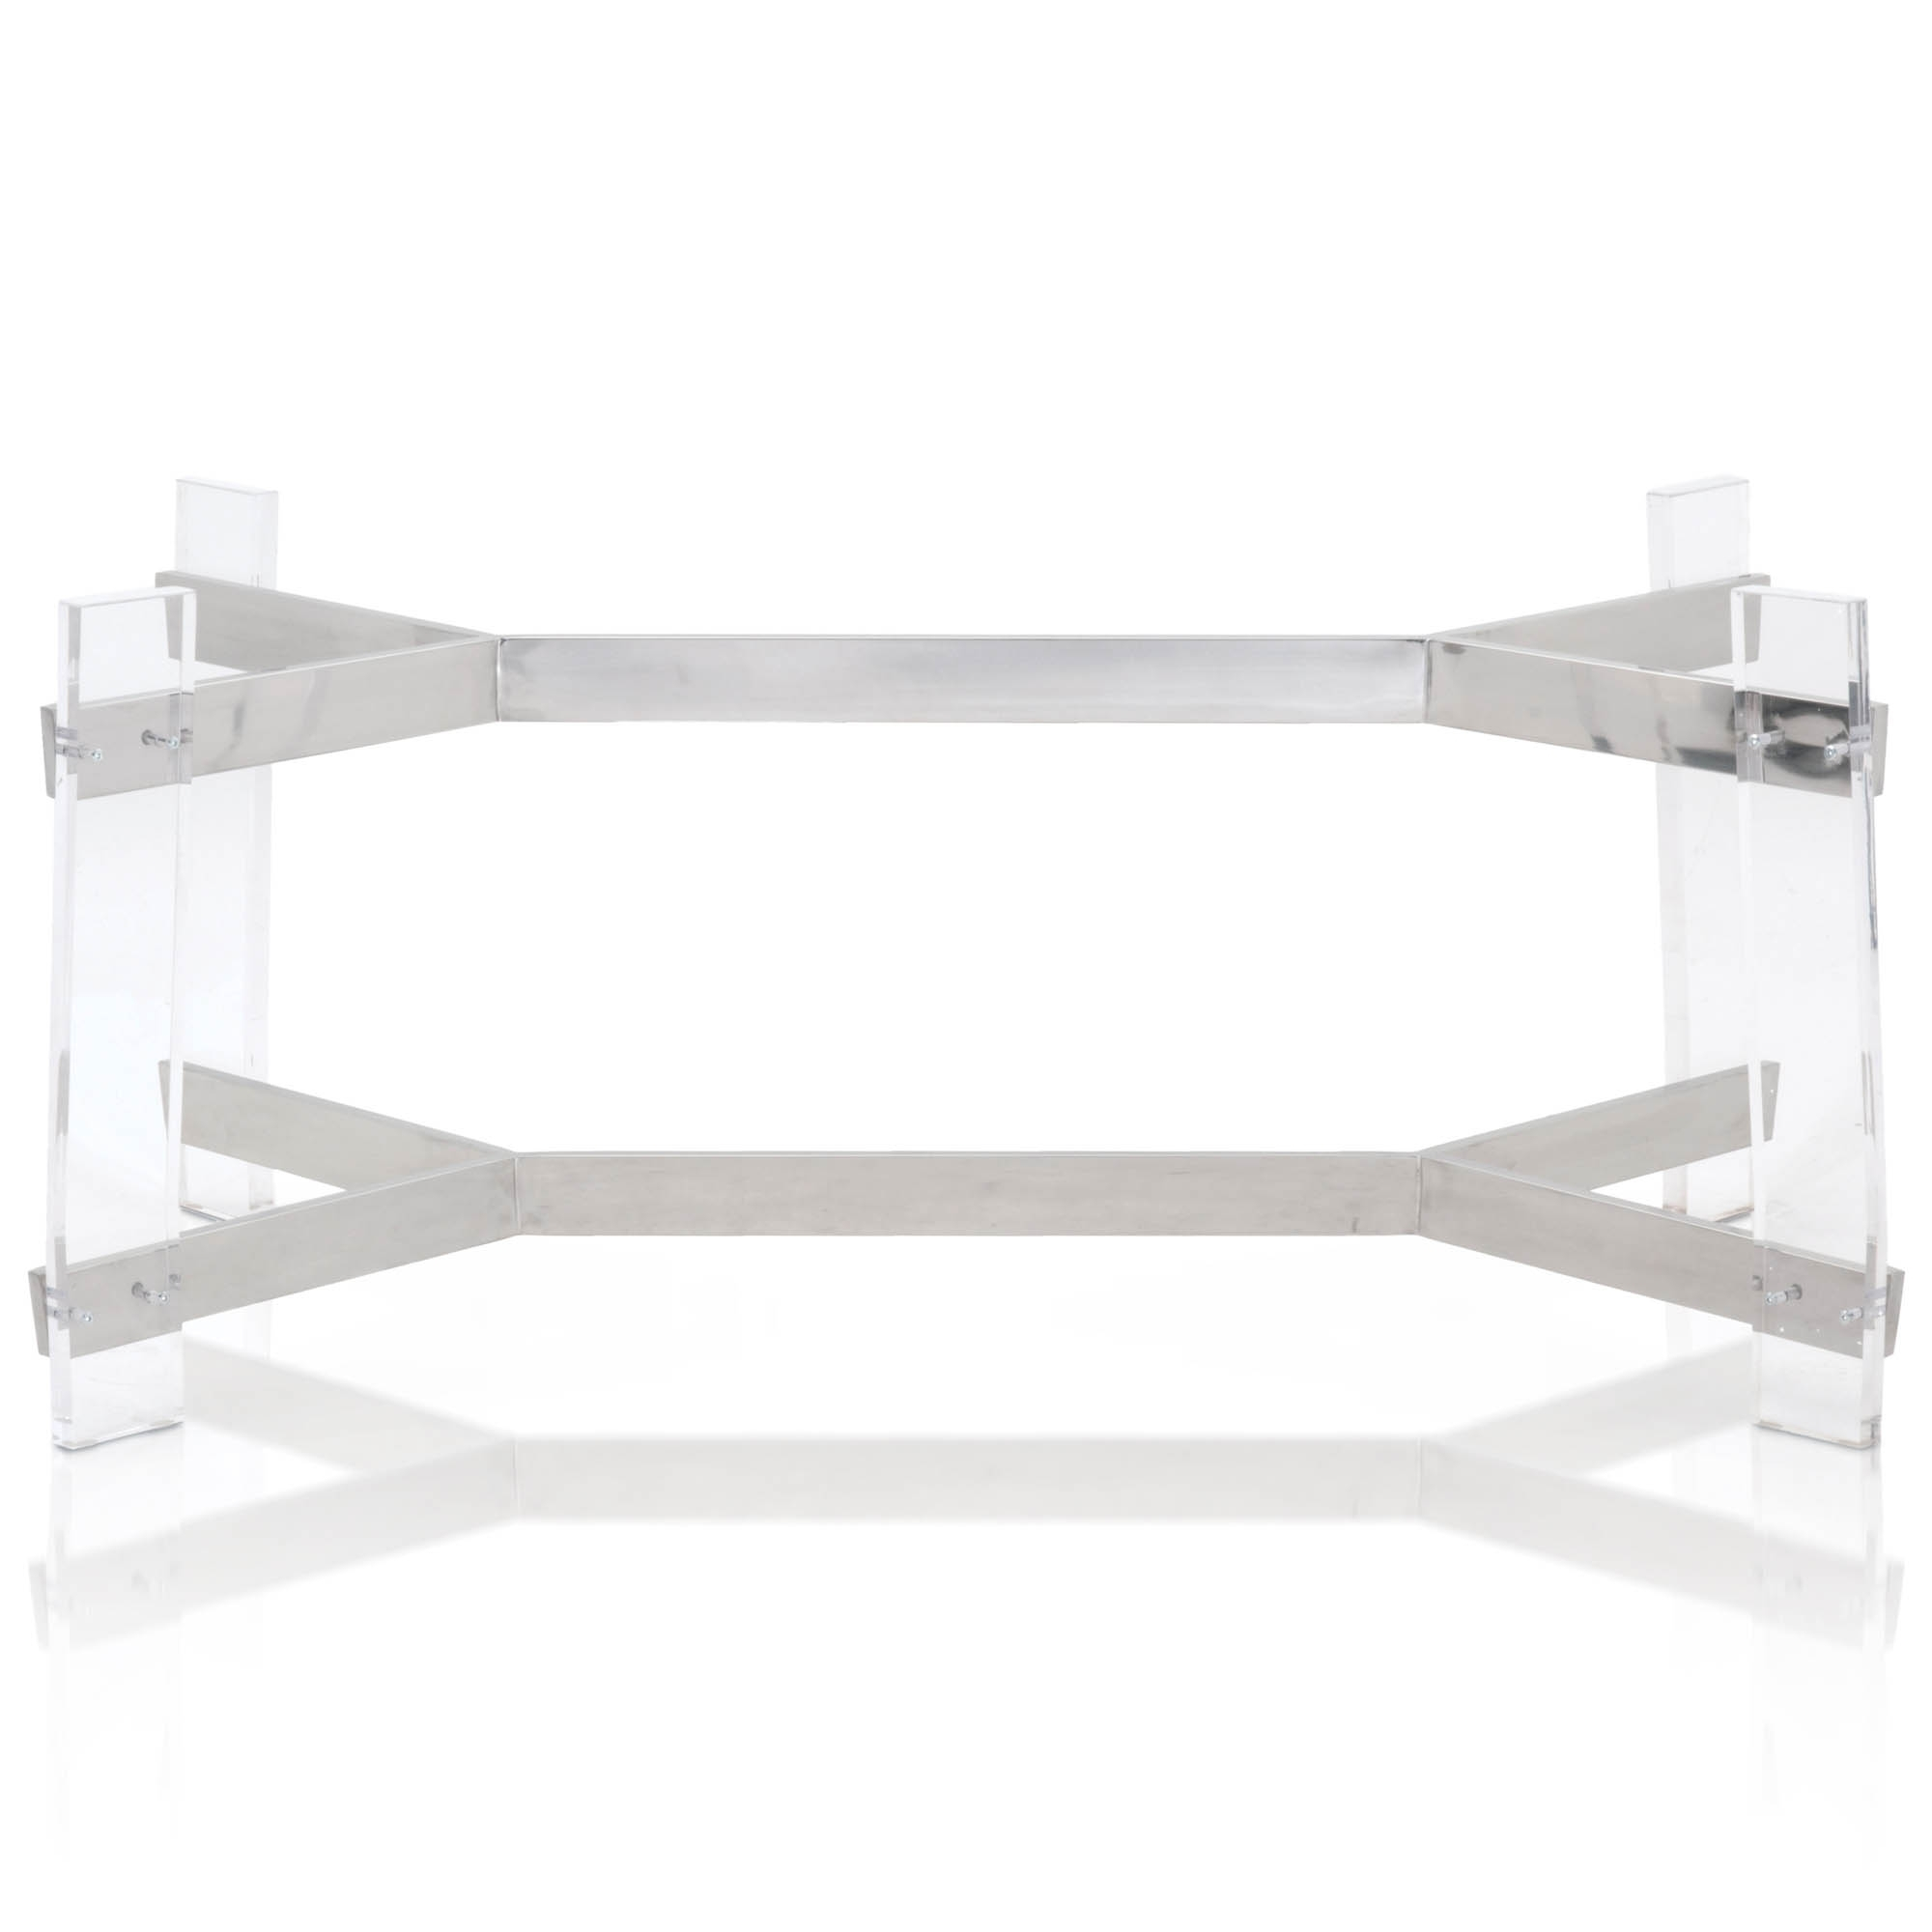 Current Nora Rectangle Dining Table Base For Nora Dining Tables (View 4 of 25)